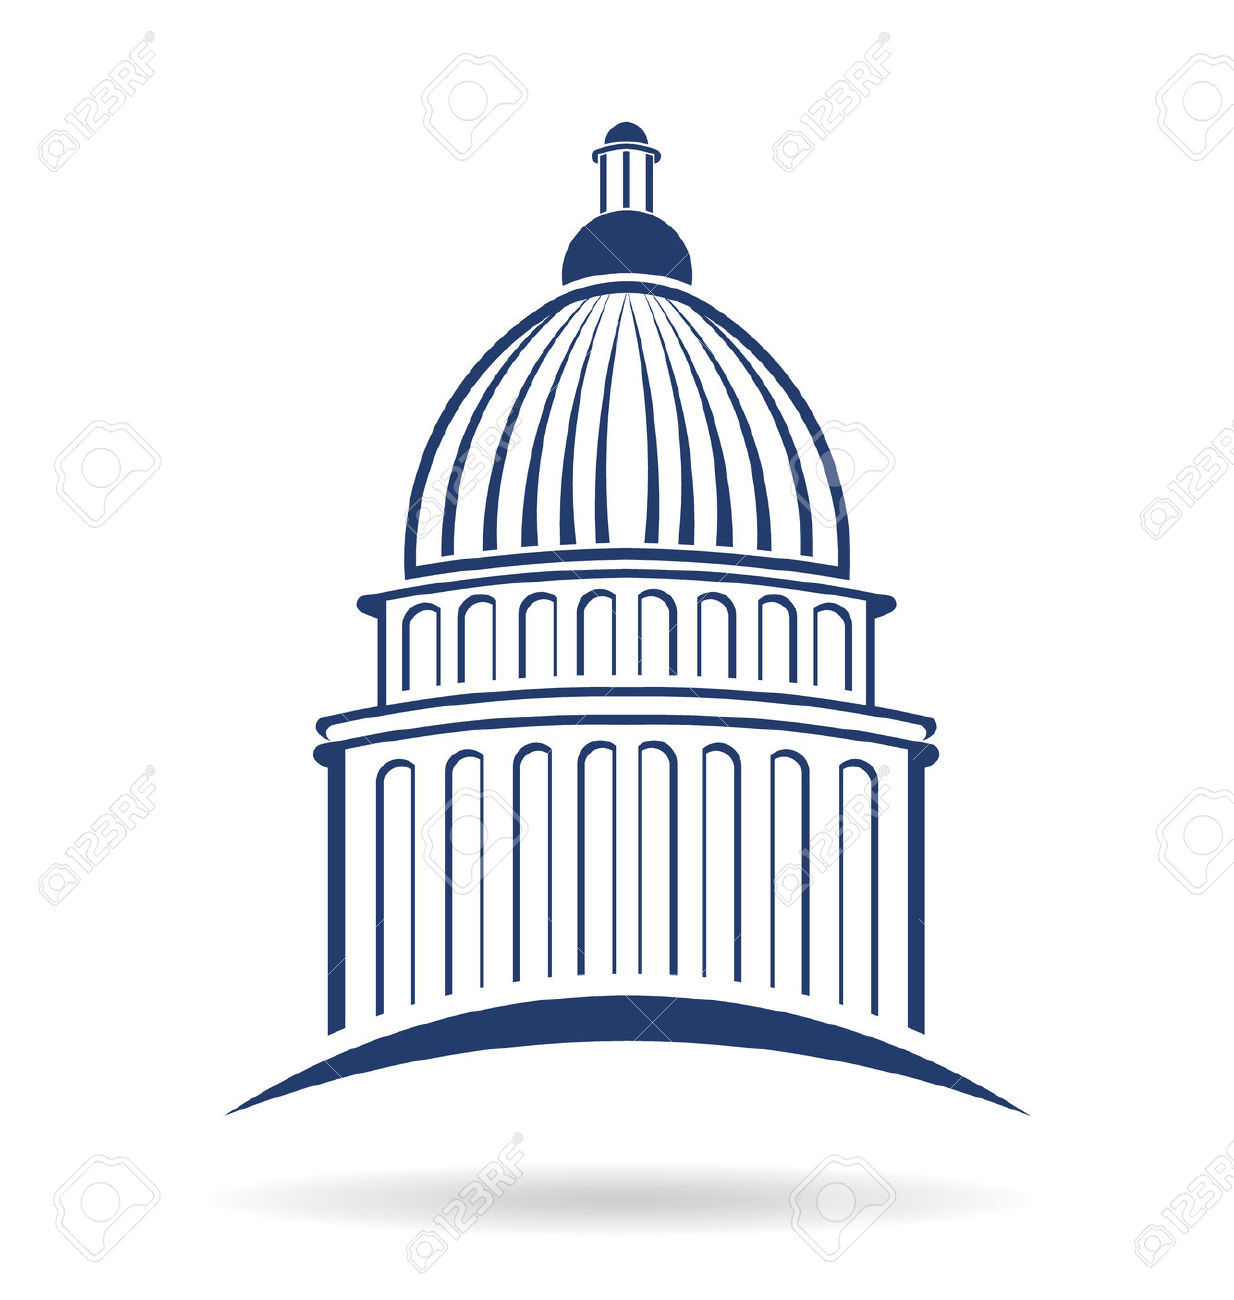 Capitol building clipart png clipart freeuse Capitol building clipart free - ClipartFox clipart freeuse